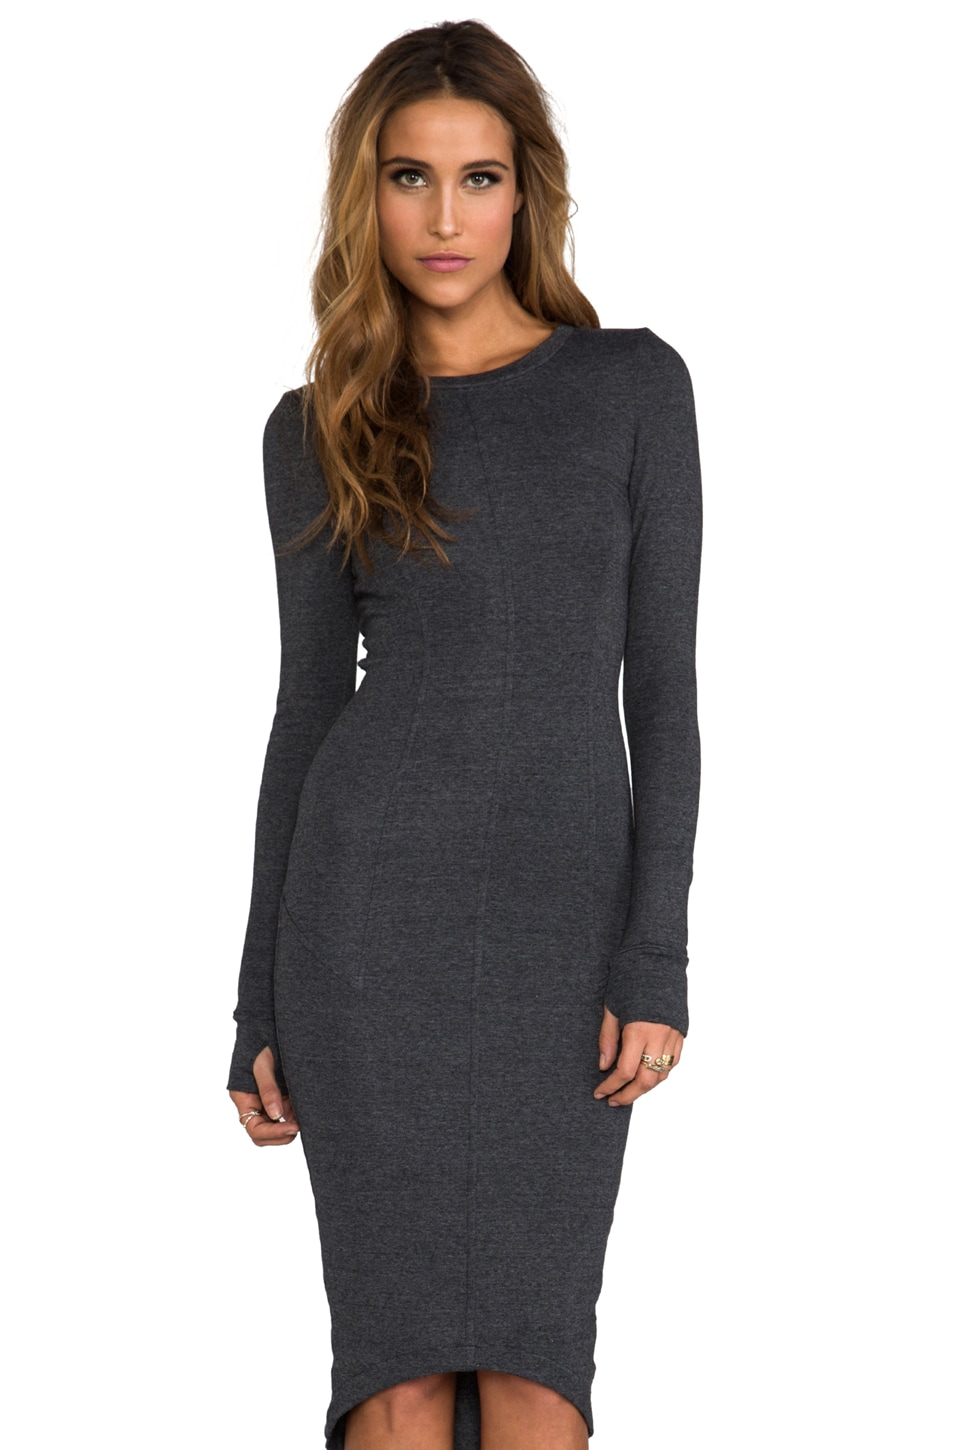 Funktional Storm Long Sleeve Dress in Charcoal